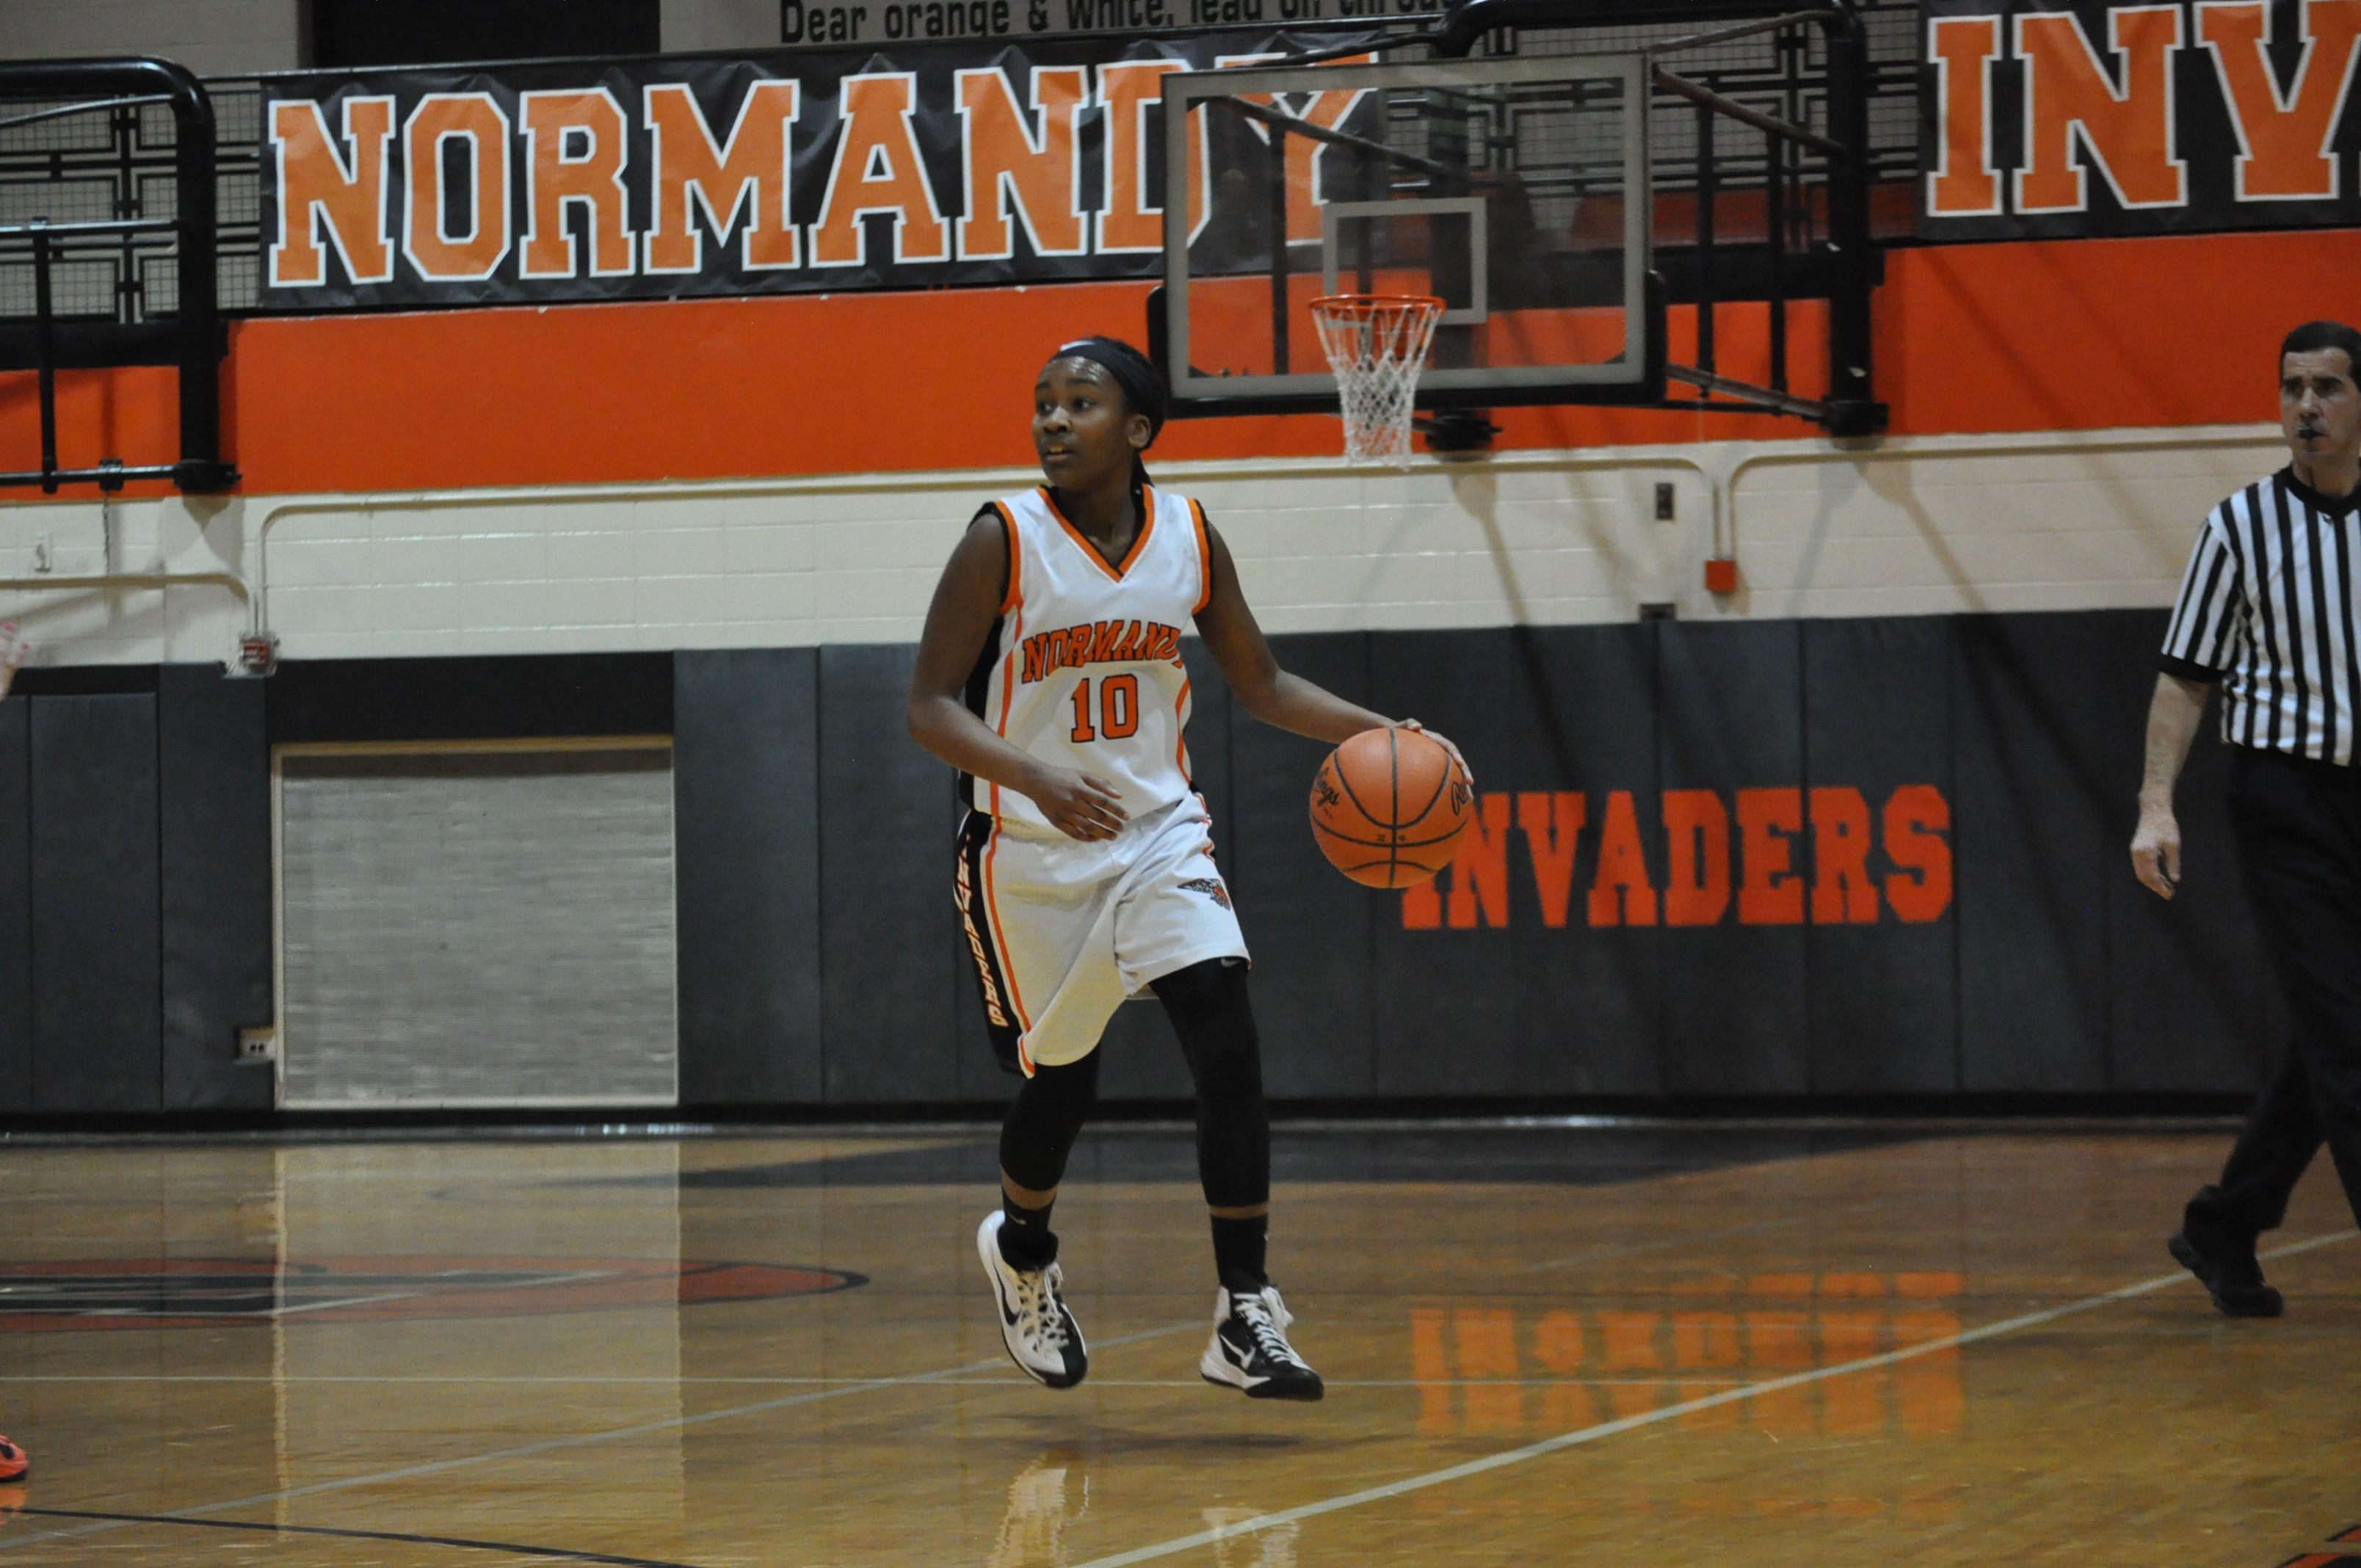 Normandy High School freshman Michaela Harrison / Photo courtesy Normandy Athletic Department